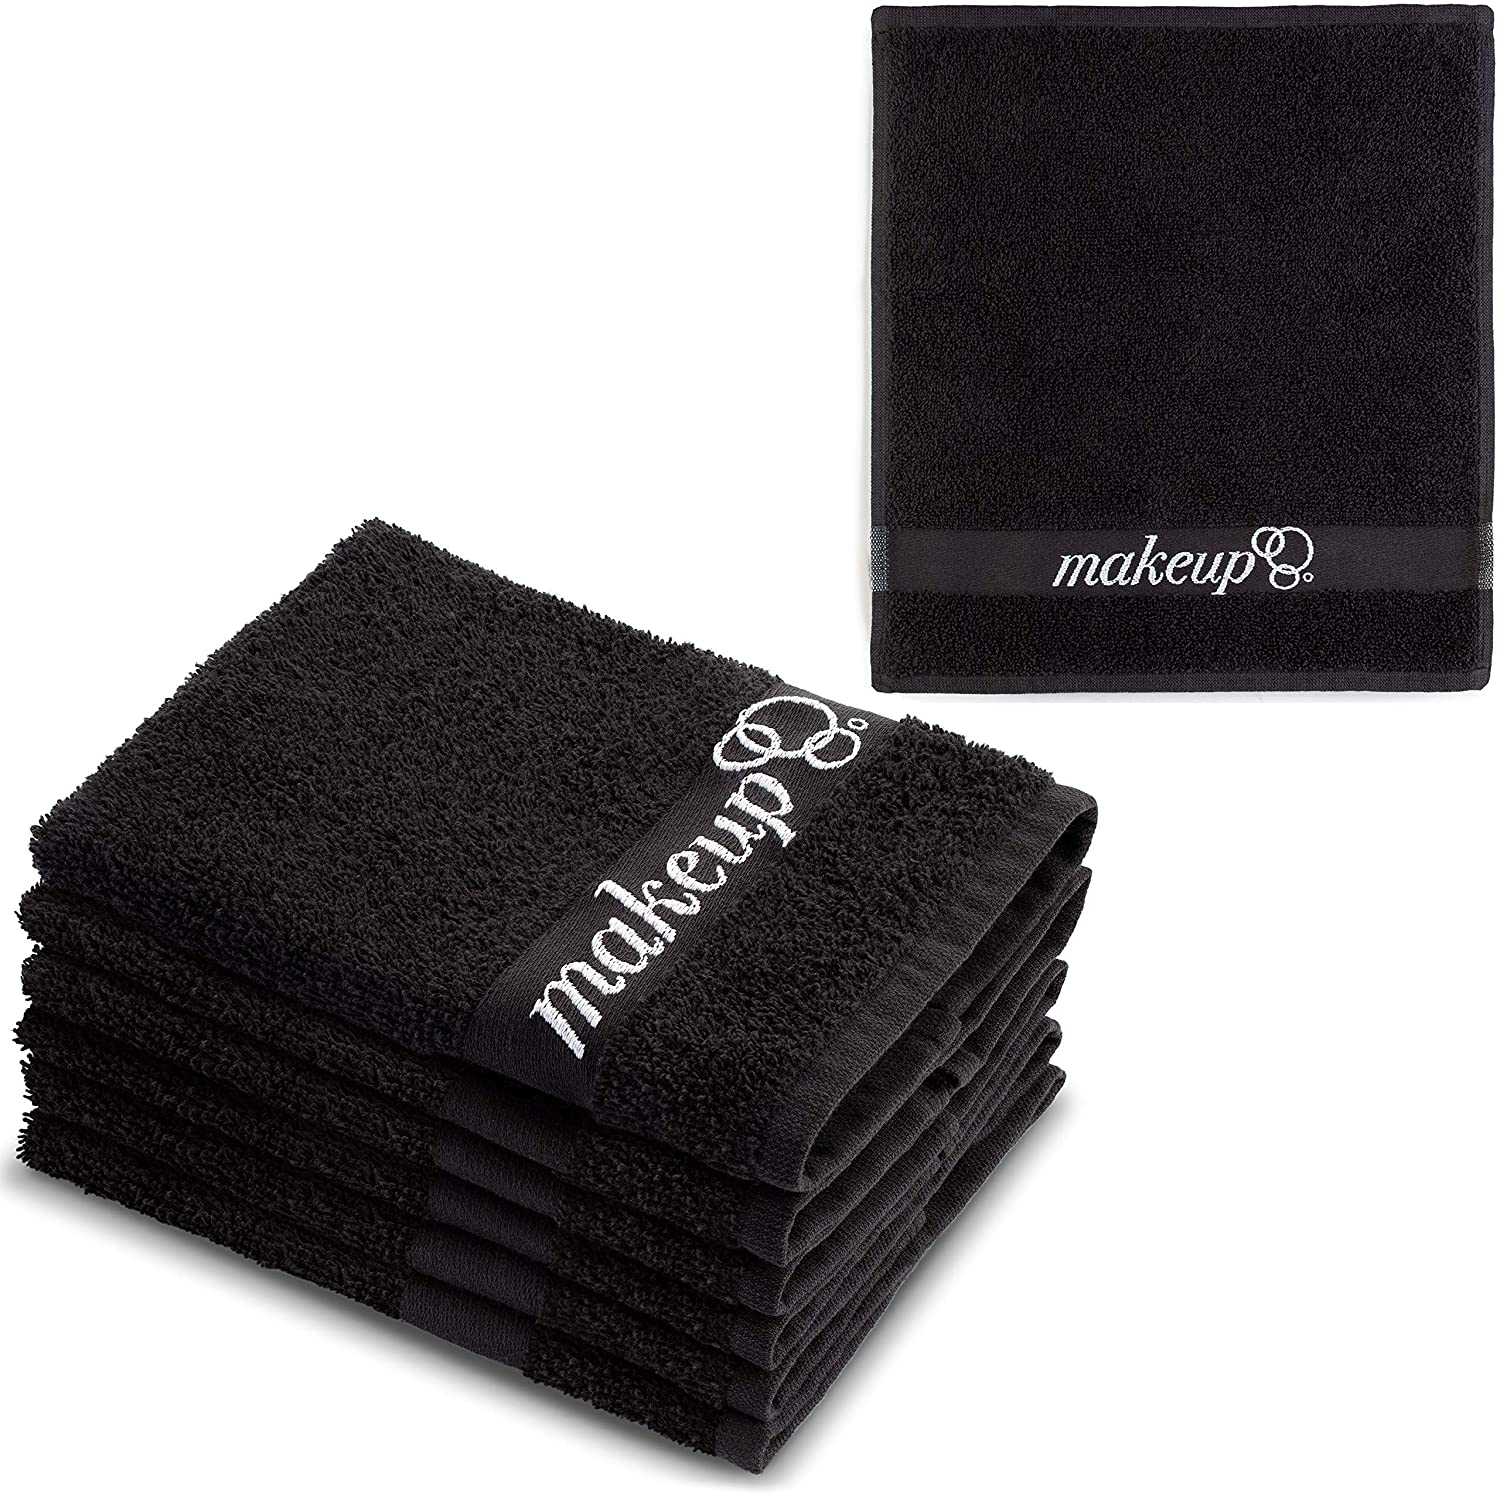 "FABBPRO Black Makeup Remover Cloth Towels – Set of 6 Facial Makeup Eraser Towels 13"" x 13"" – Made in Turkey – Ultra Soft Cotton – Chic Black Color – Beautiful Design – Gentle & Safe on Skin"